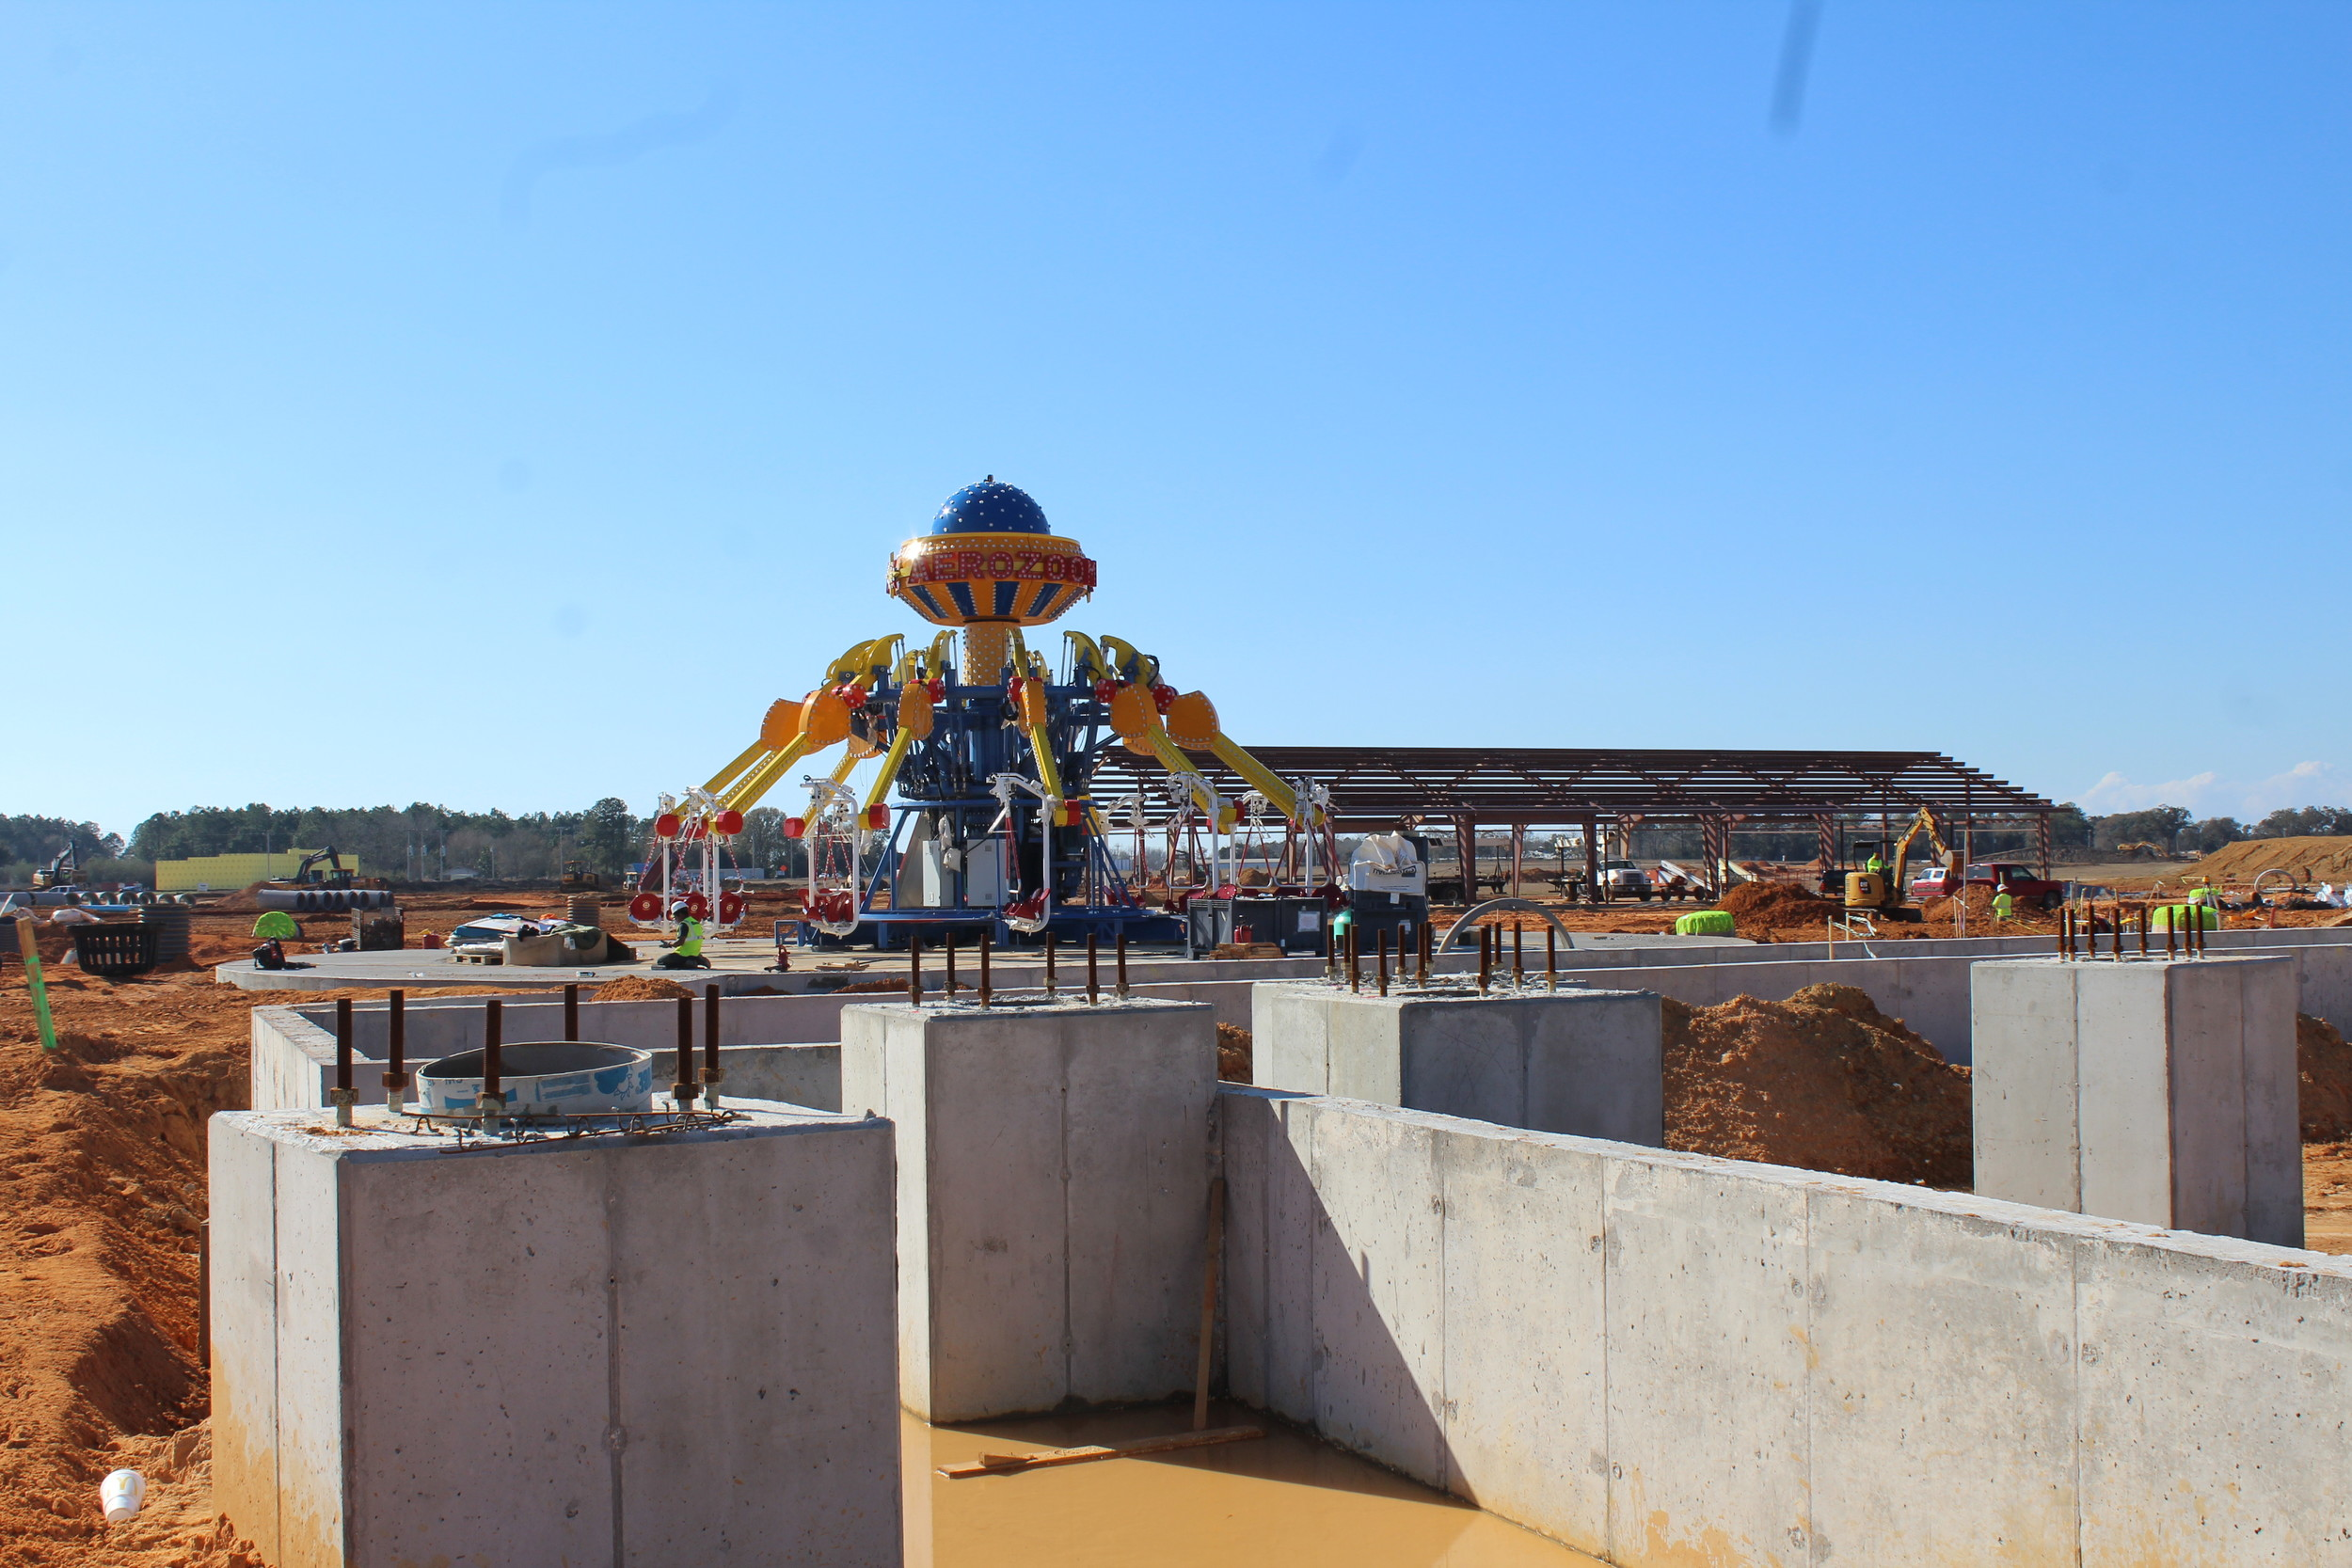 Inside theme park, facing west. The concrete slabs are the foundation for the roller coaster. The steel-framed building is the maintenance building for the park.